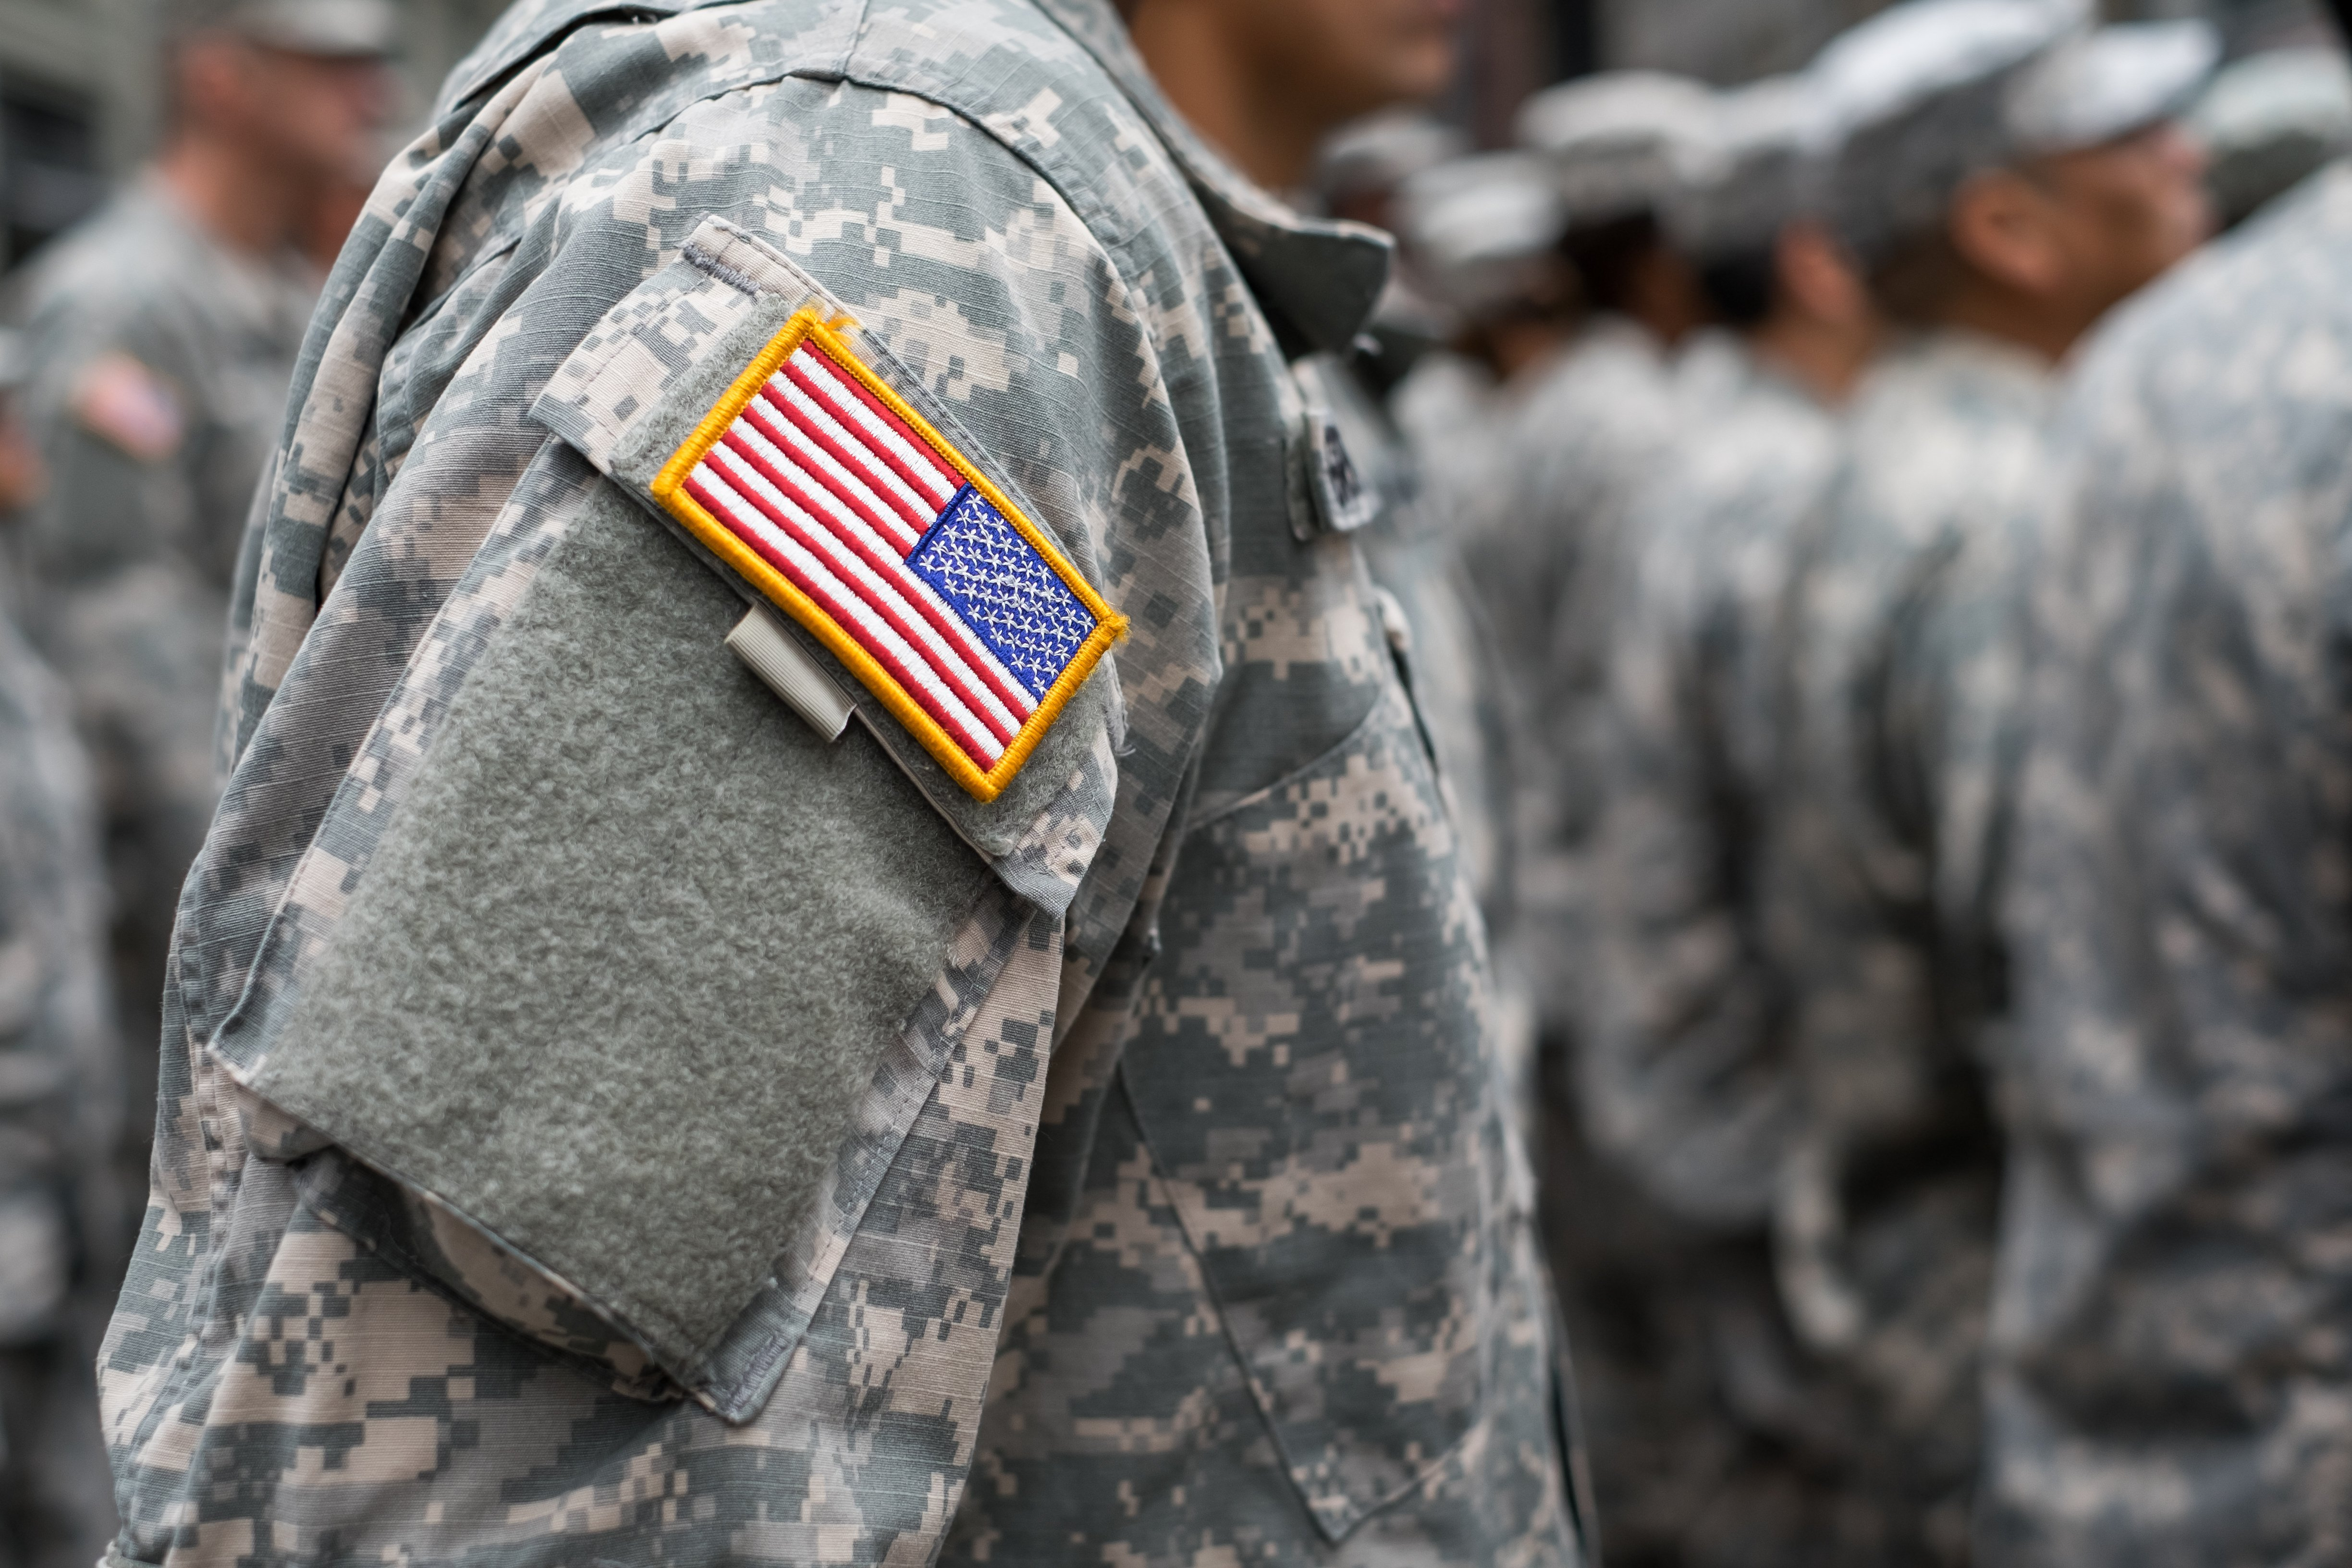 USA patch flag on soldiers arm   Photo: Shutterstock